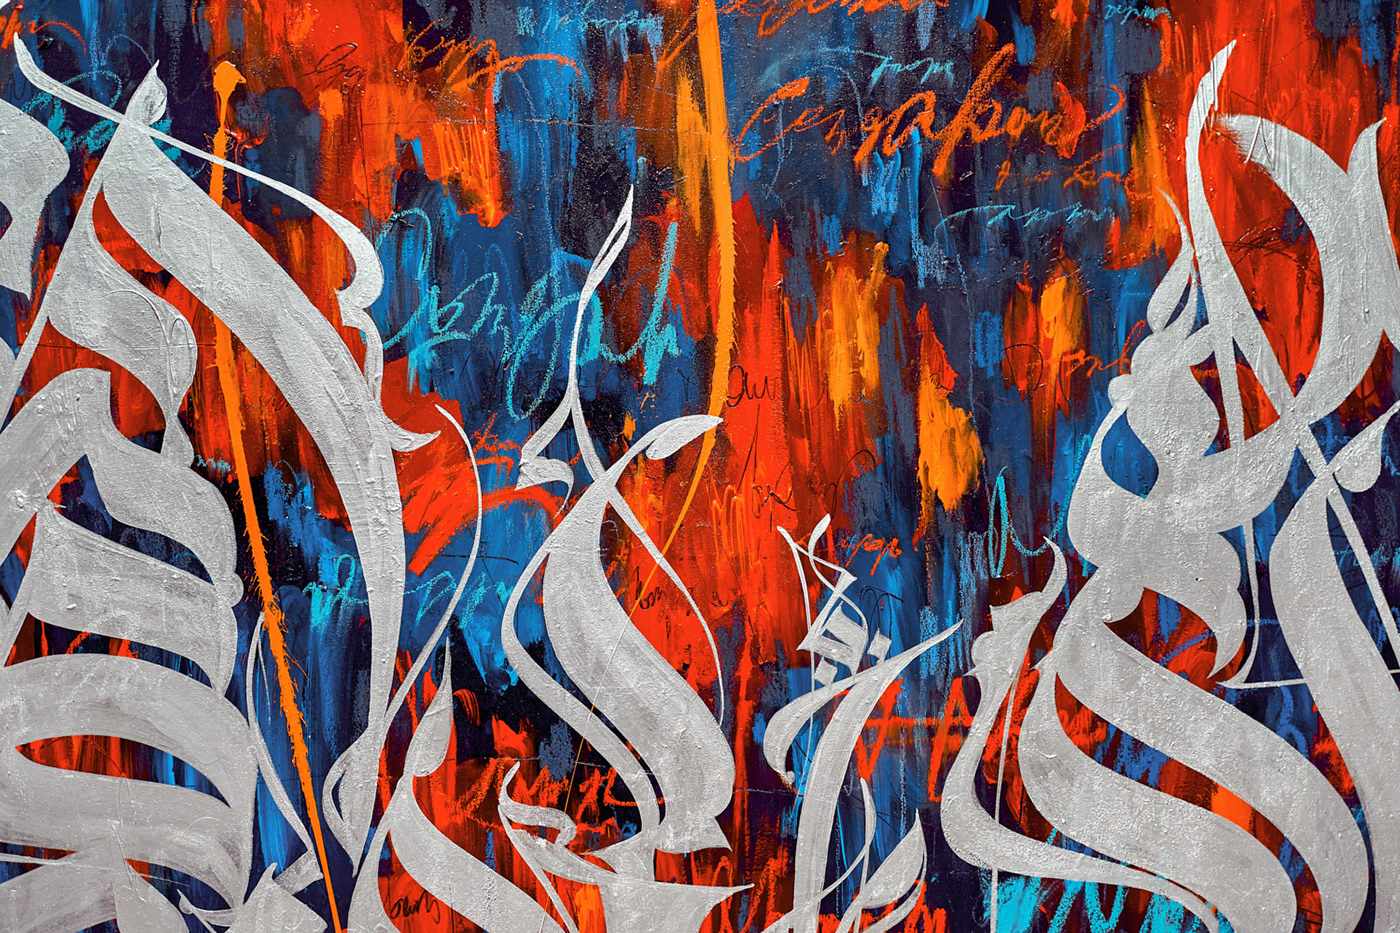 Modern cyrillic & latin calligraphy art presented in  Сalligrafuturism style by Pokras Lampas